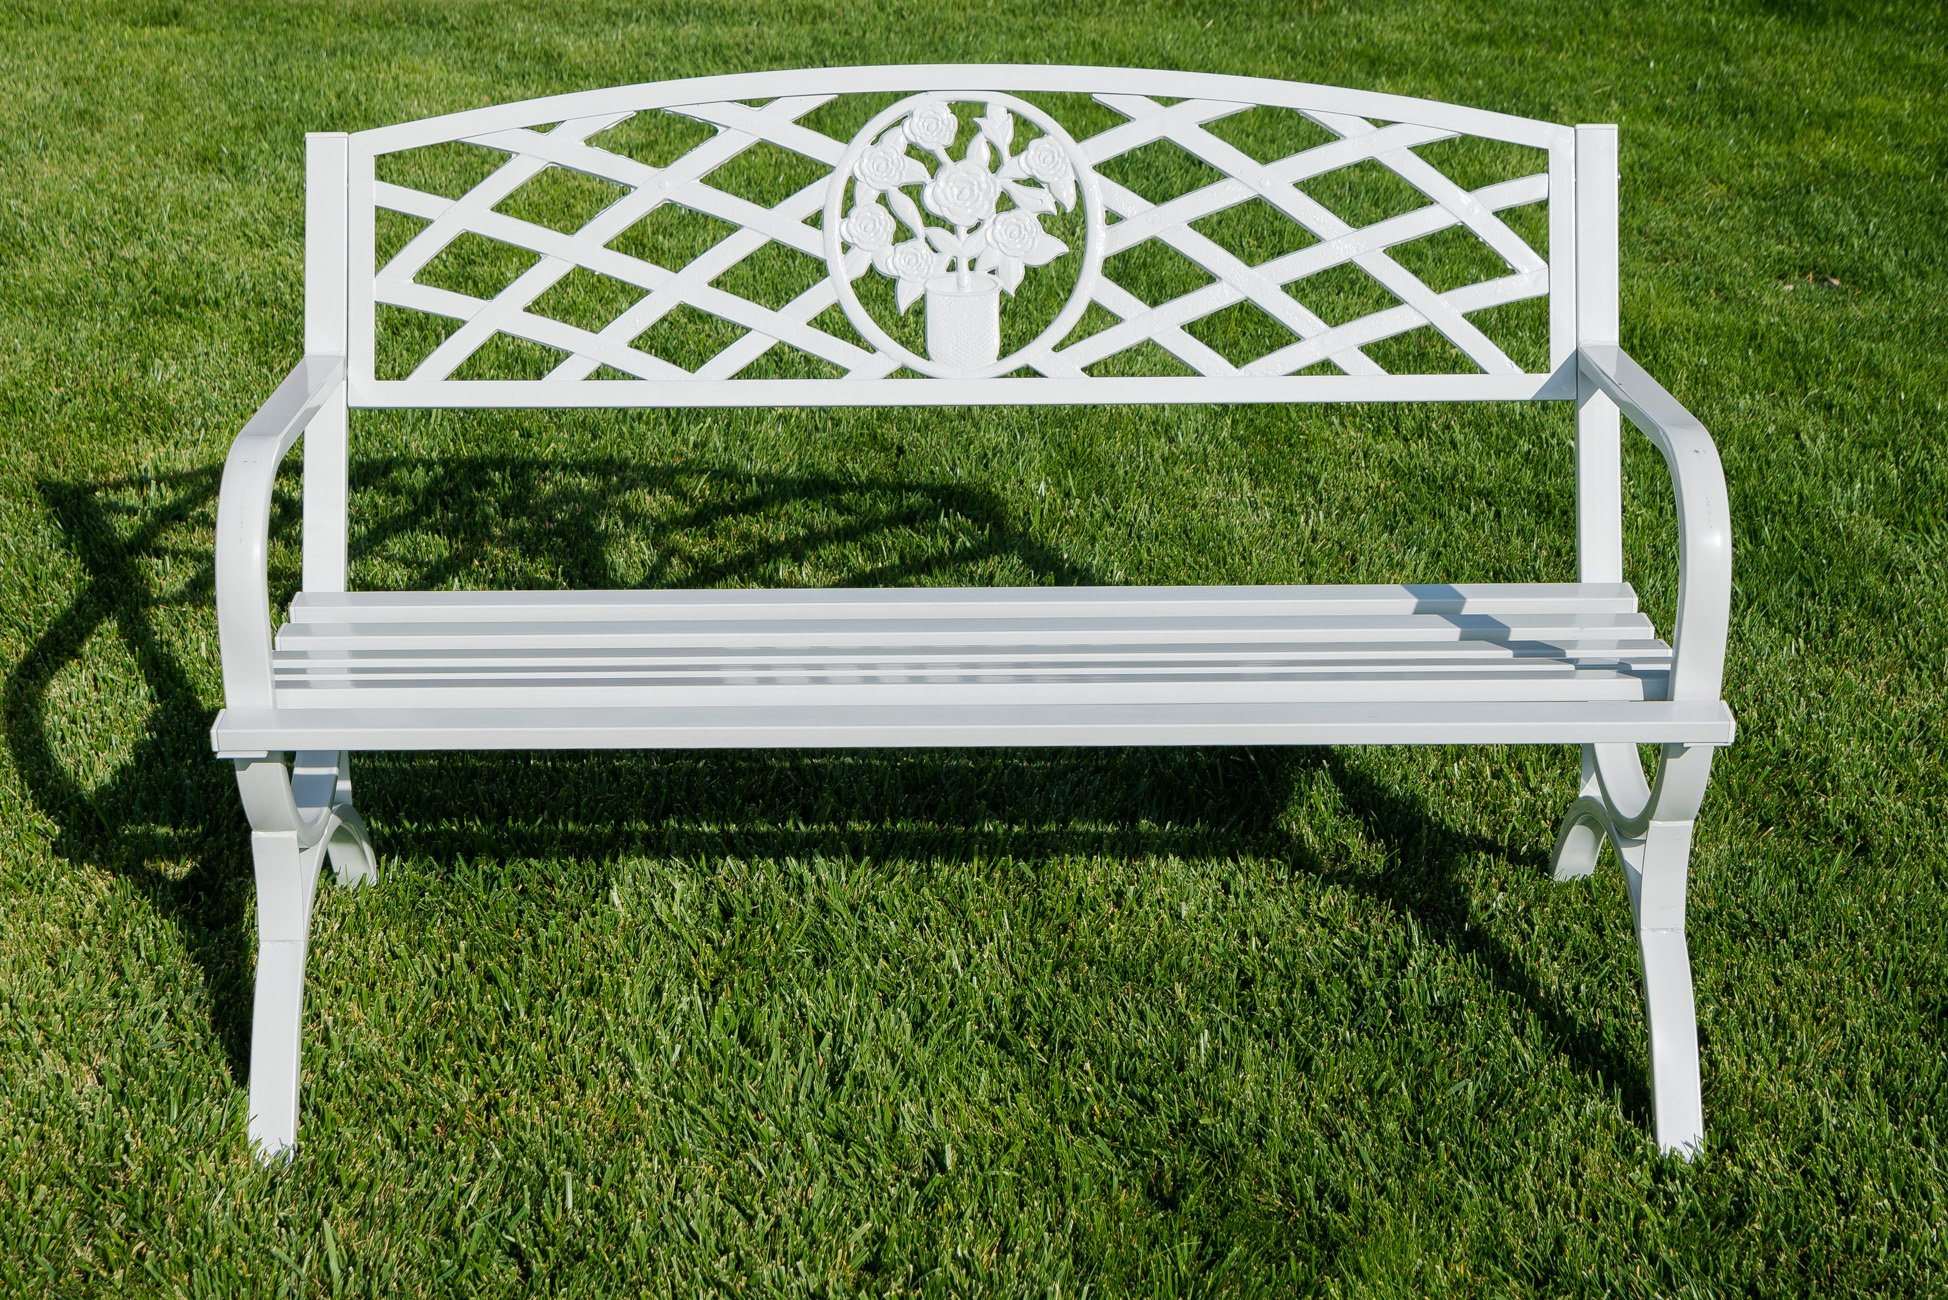 Belleze 50'' inch Outdoor Park Bench Garden Backyard Furniture Chair Porch Seat Steel Frame, White by Belleze (Image #2)